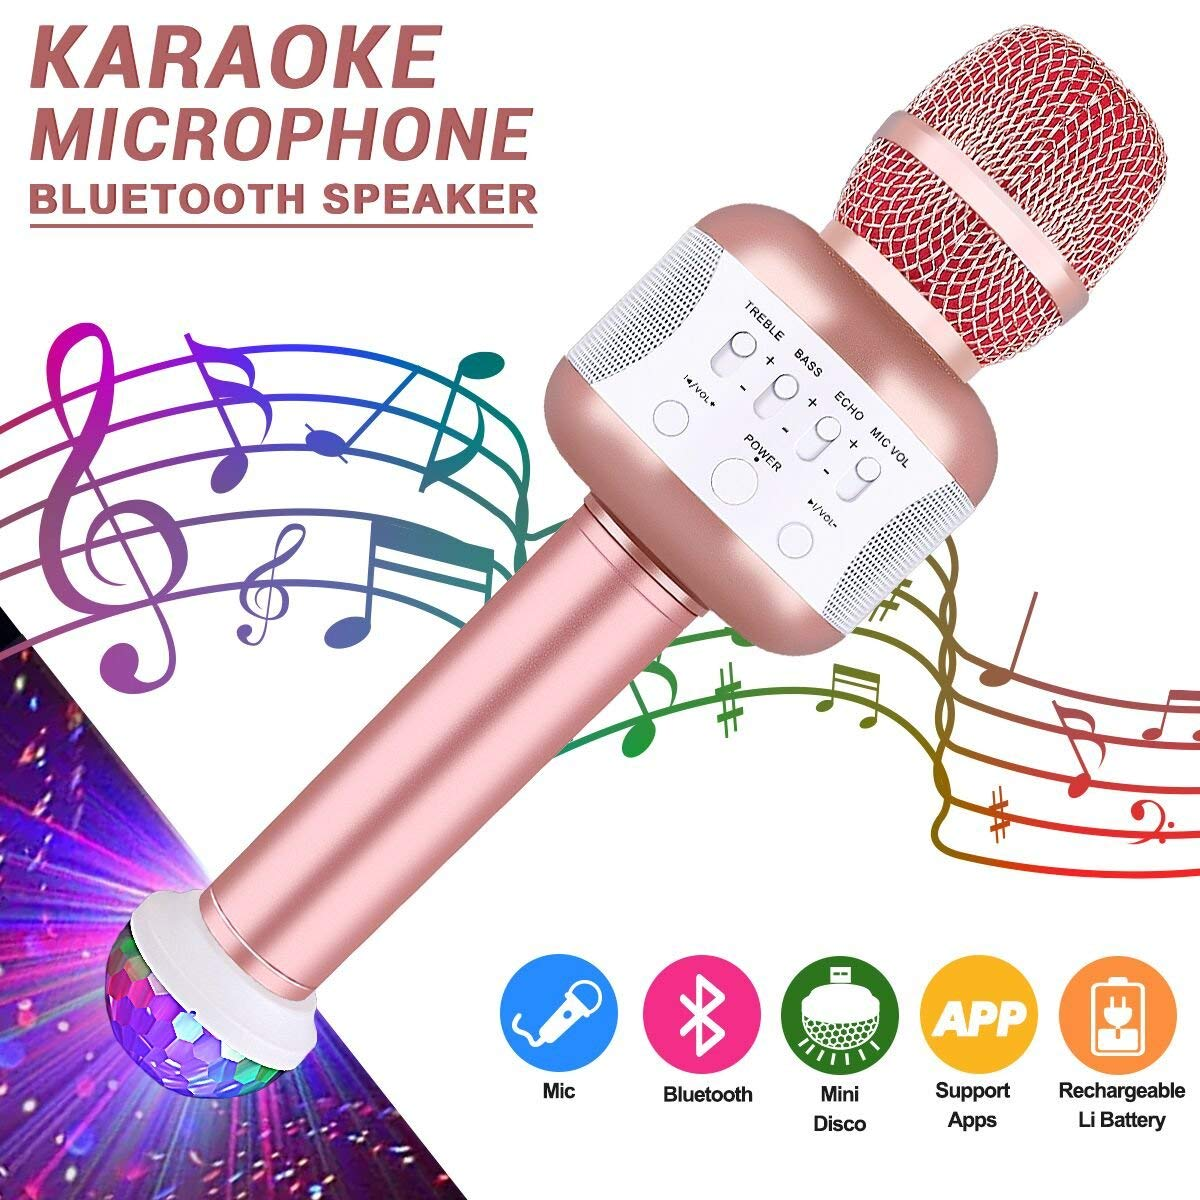 Karaoke Microphone, Portable Handheld Wireless Karaoke with Bluetooth Speaker Recording Machine Compatible for iphone ipad Android Smartphone or PC, USB Karaoke for Kids Adults (rose gold)